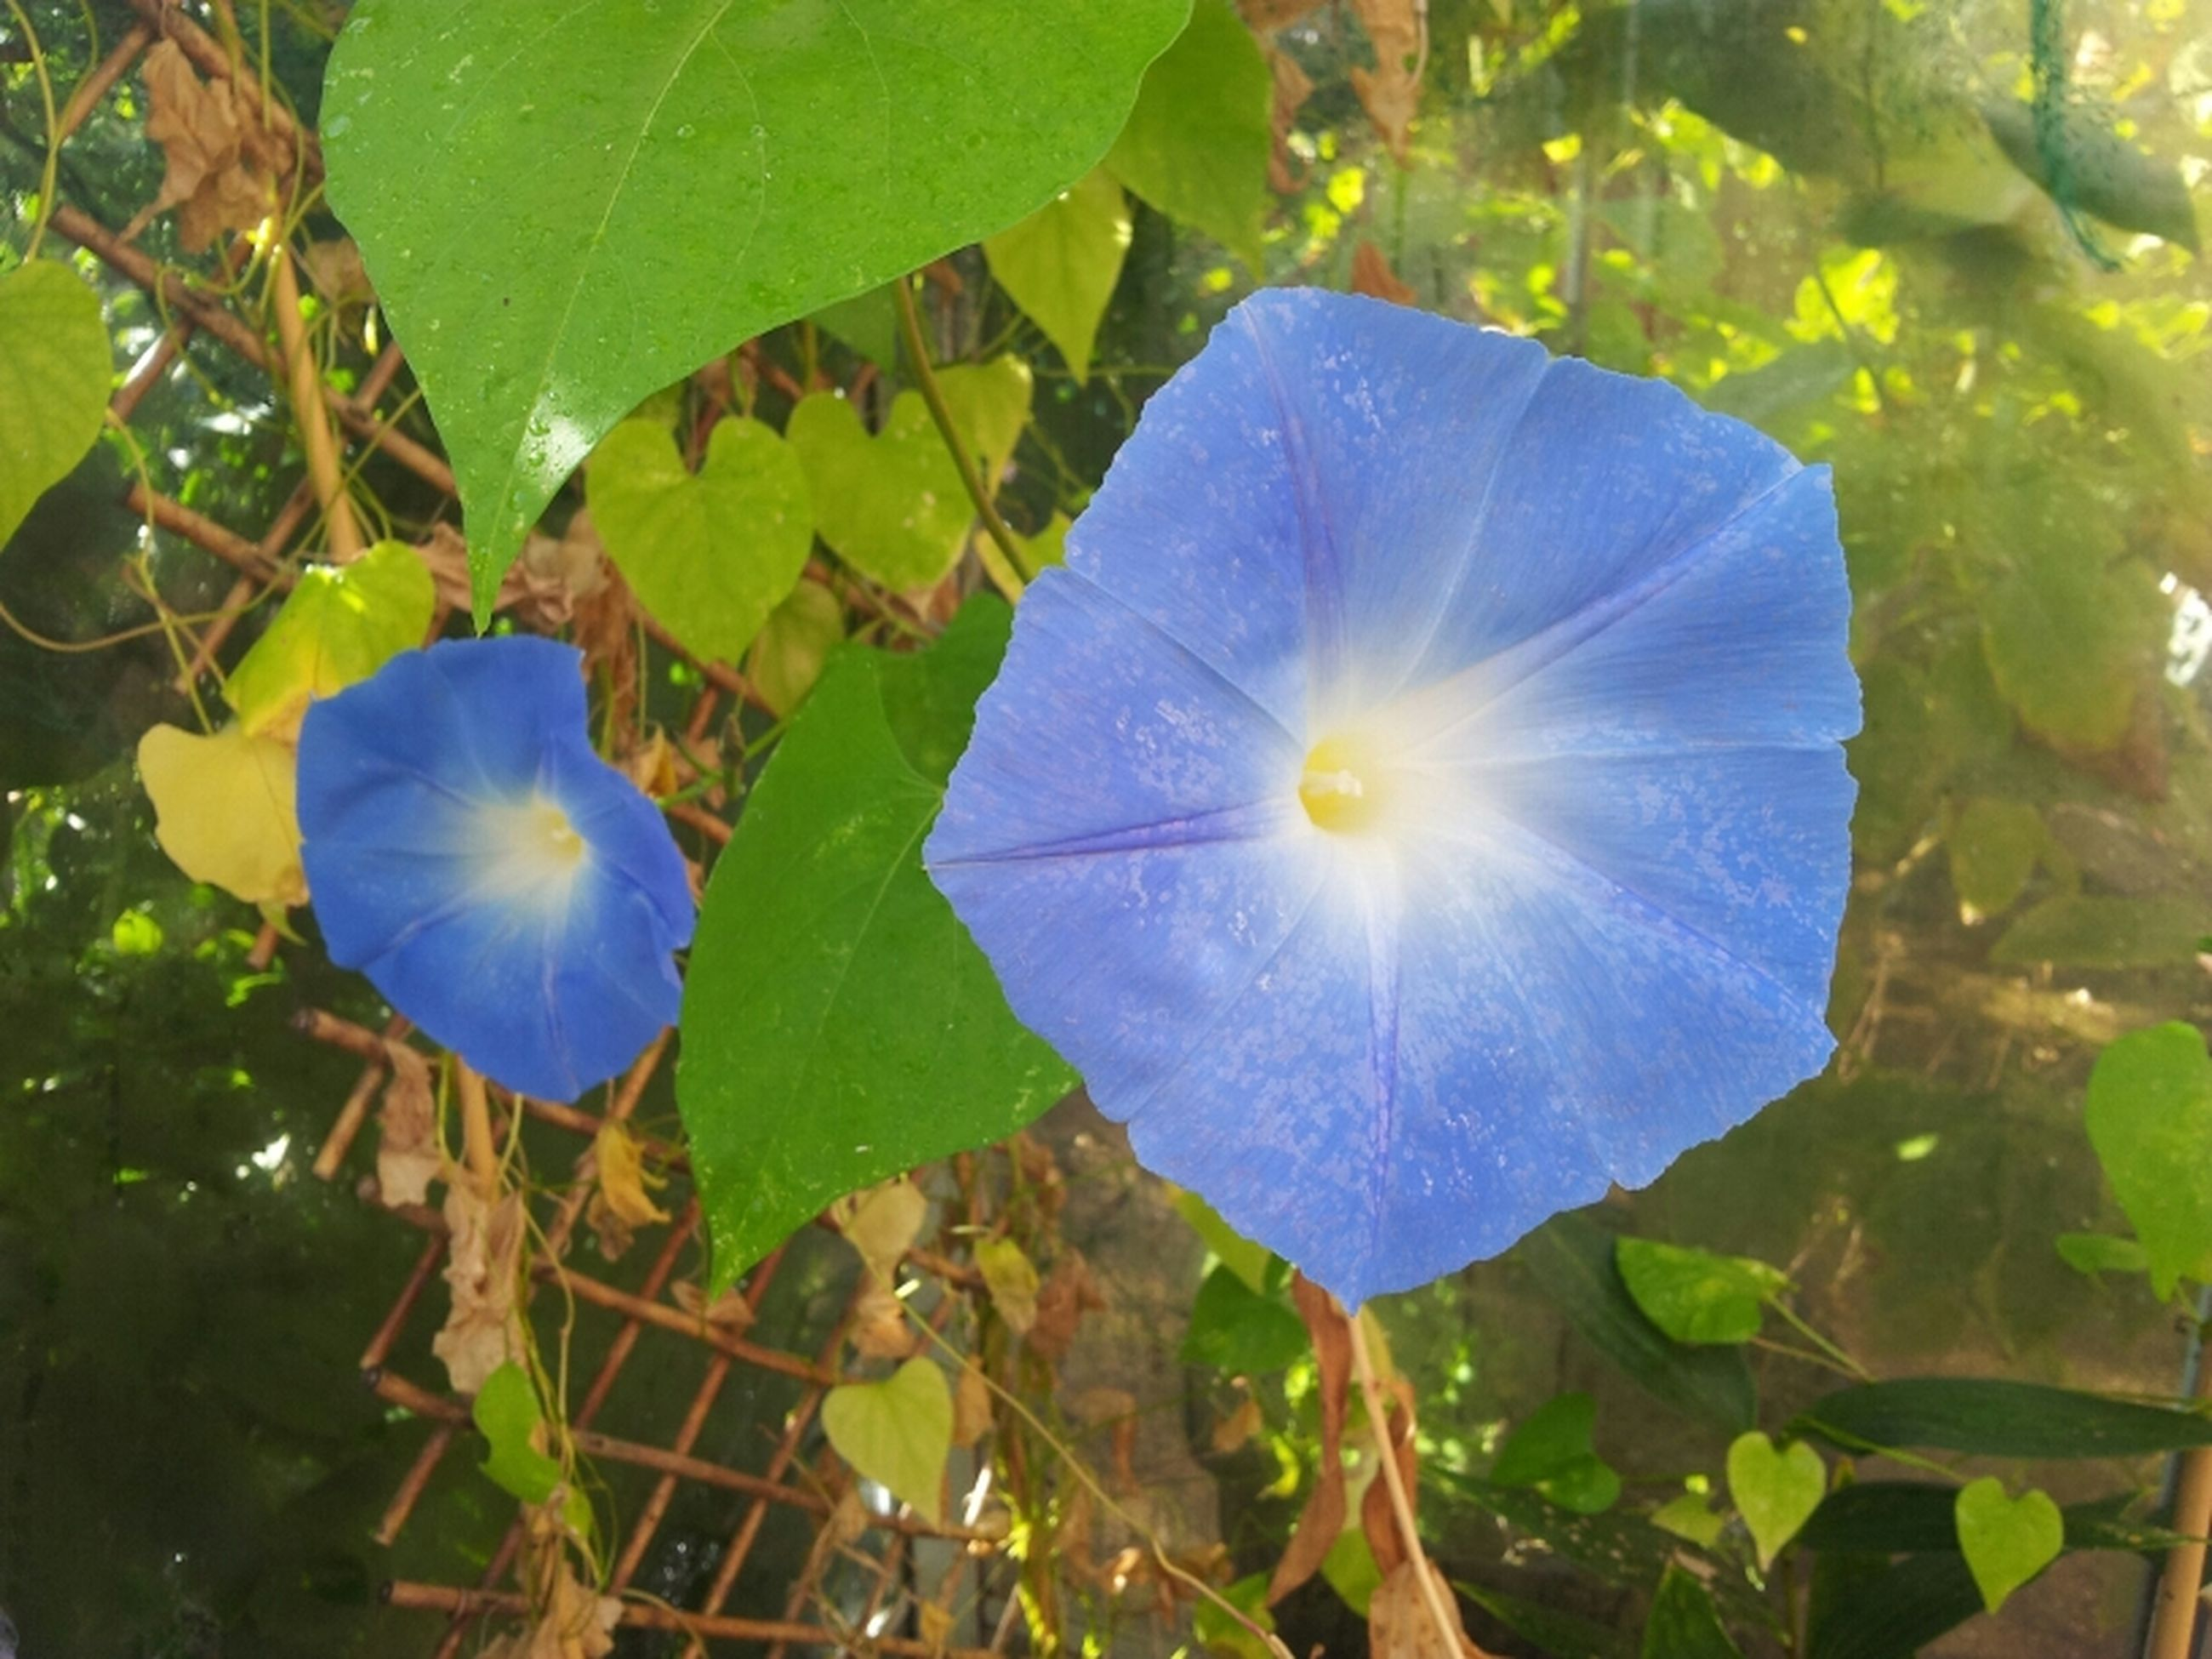 leaf, growth, freshness, beauty in nature, nature, green color, fragility, close-up, plant, blue, sunlight, flower, day, outdoors, purple, no people, single flower, tranquility, green, low angle view